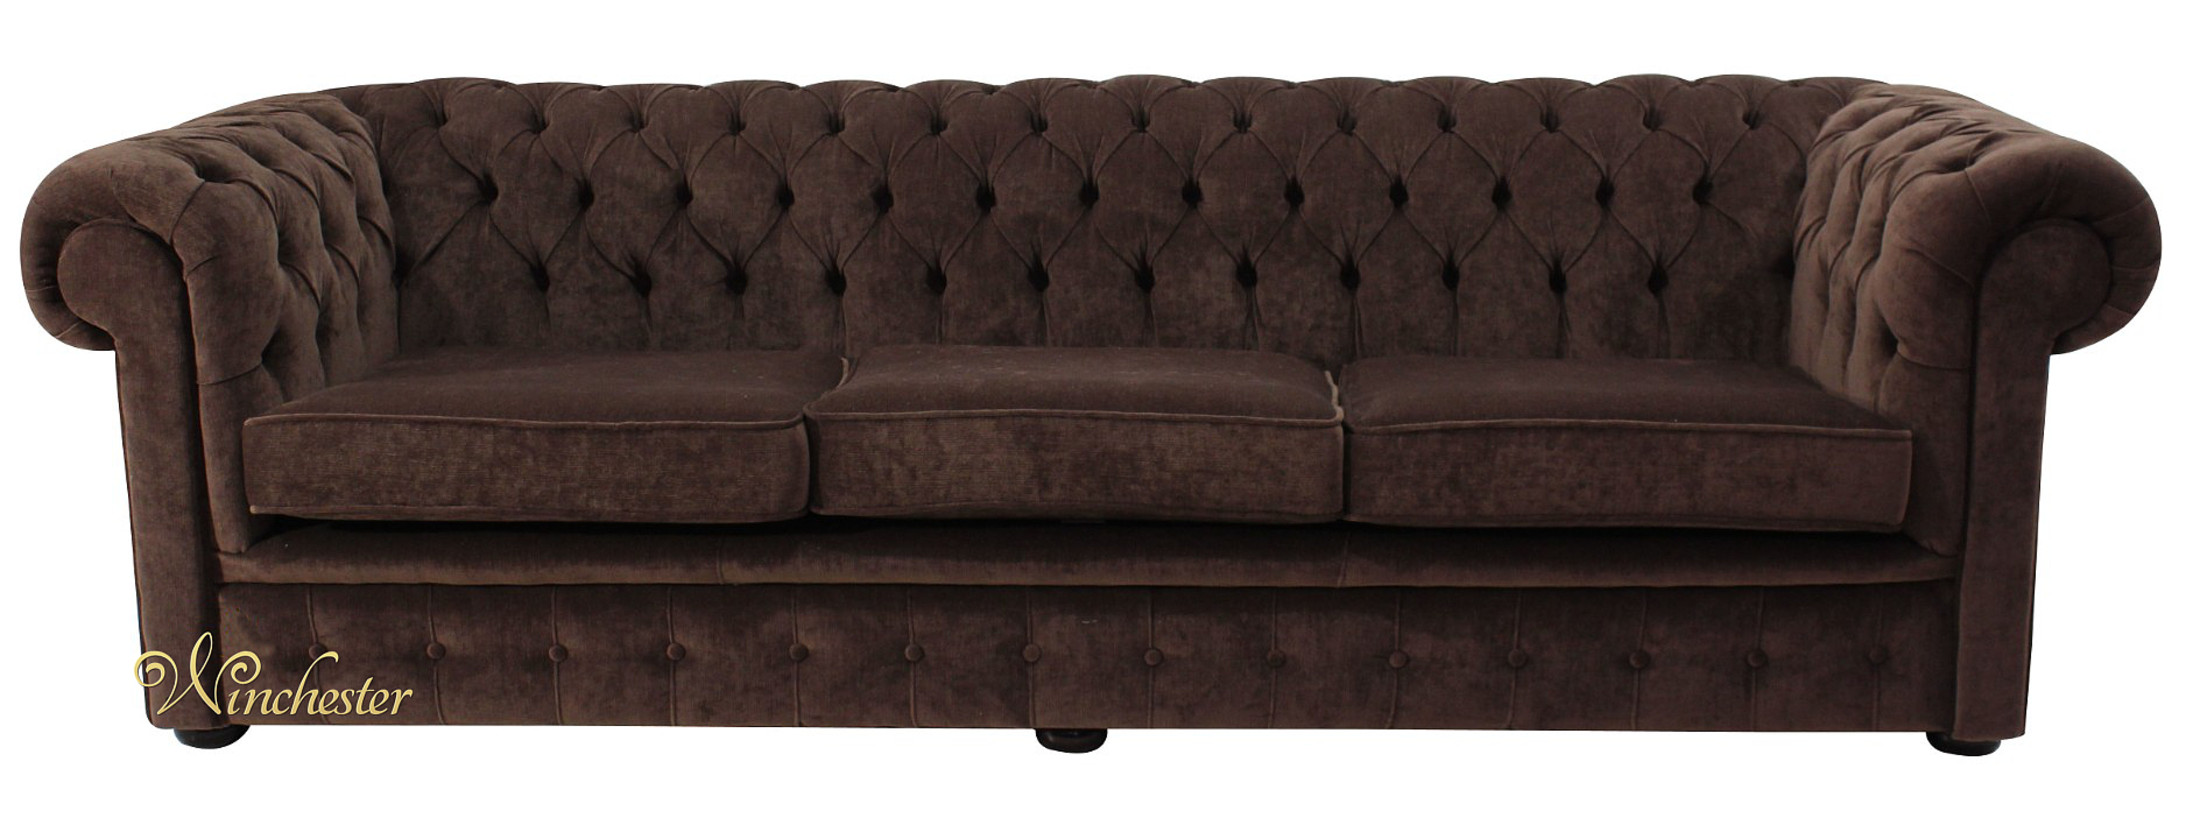 Chesterfield Thomas 4 Seater Sofa Settee Pimlico Chocolate Fabric Wc